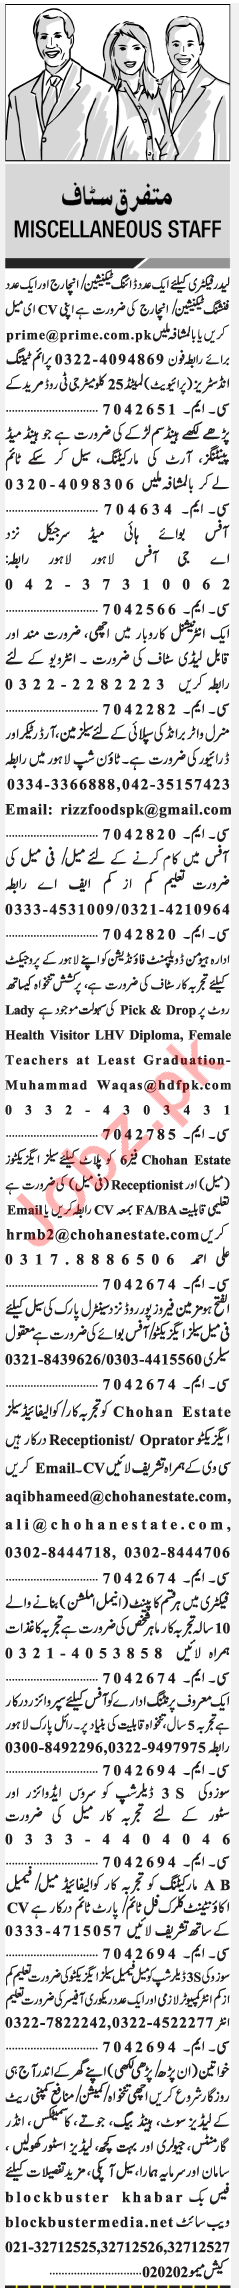 Miscellaneous Jobs in Lahore 2018